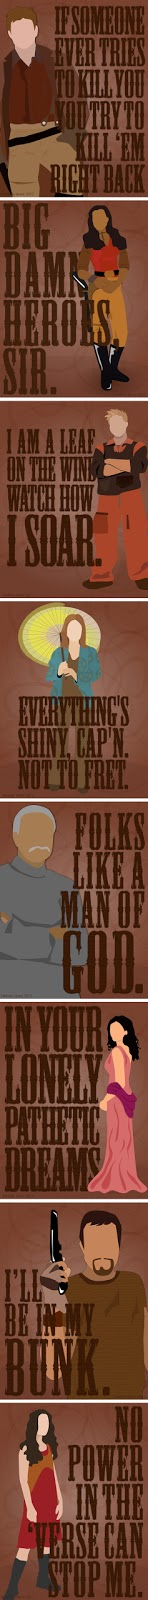 Firefly Portraits: The Crew of Serenity